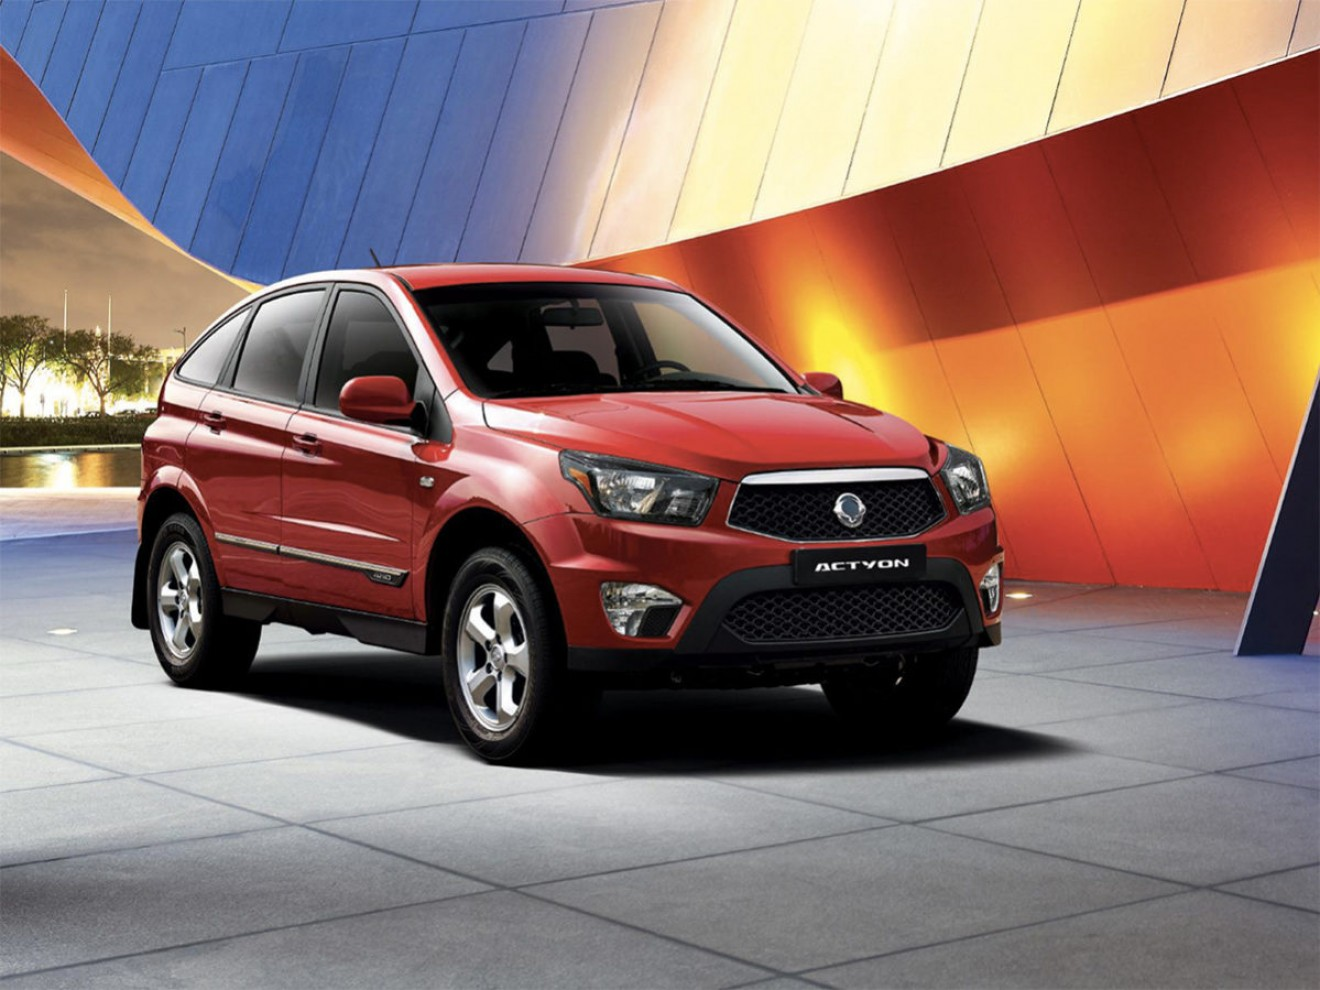 Club SsangYong Actyon